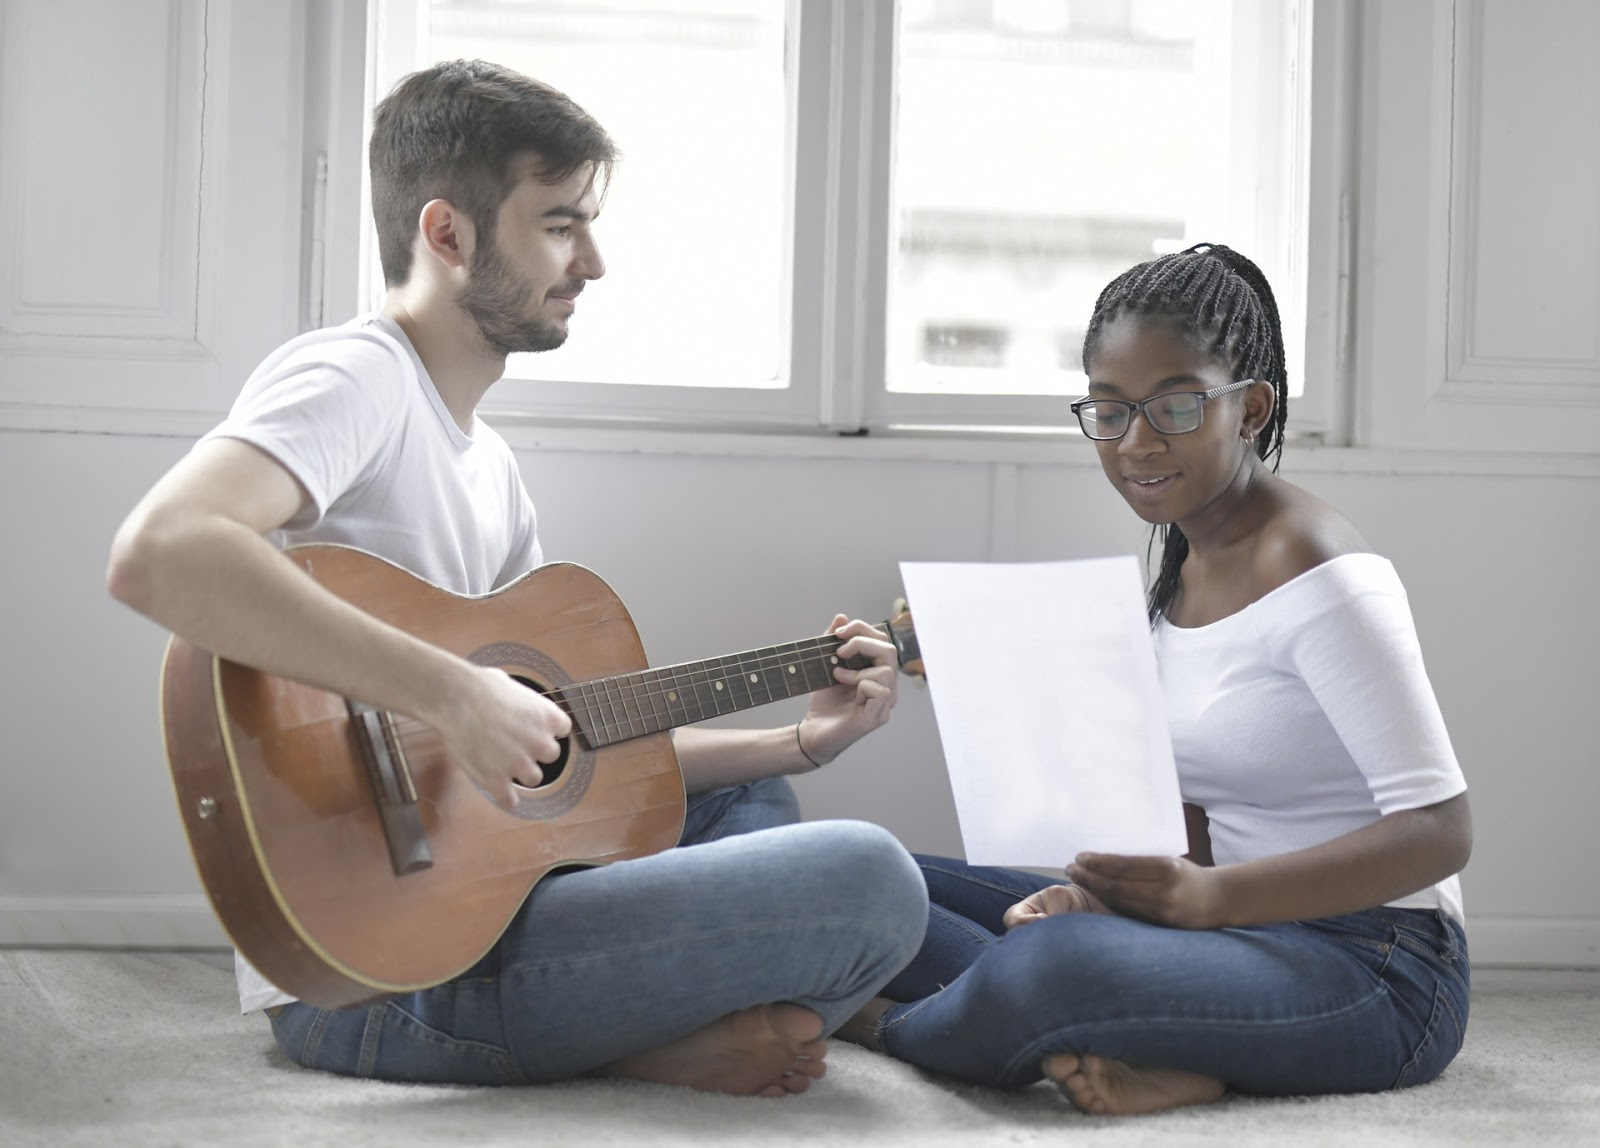 Music therapist playing guitar and client singing and utilizing verbal interventions.